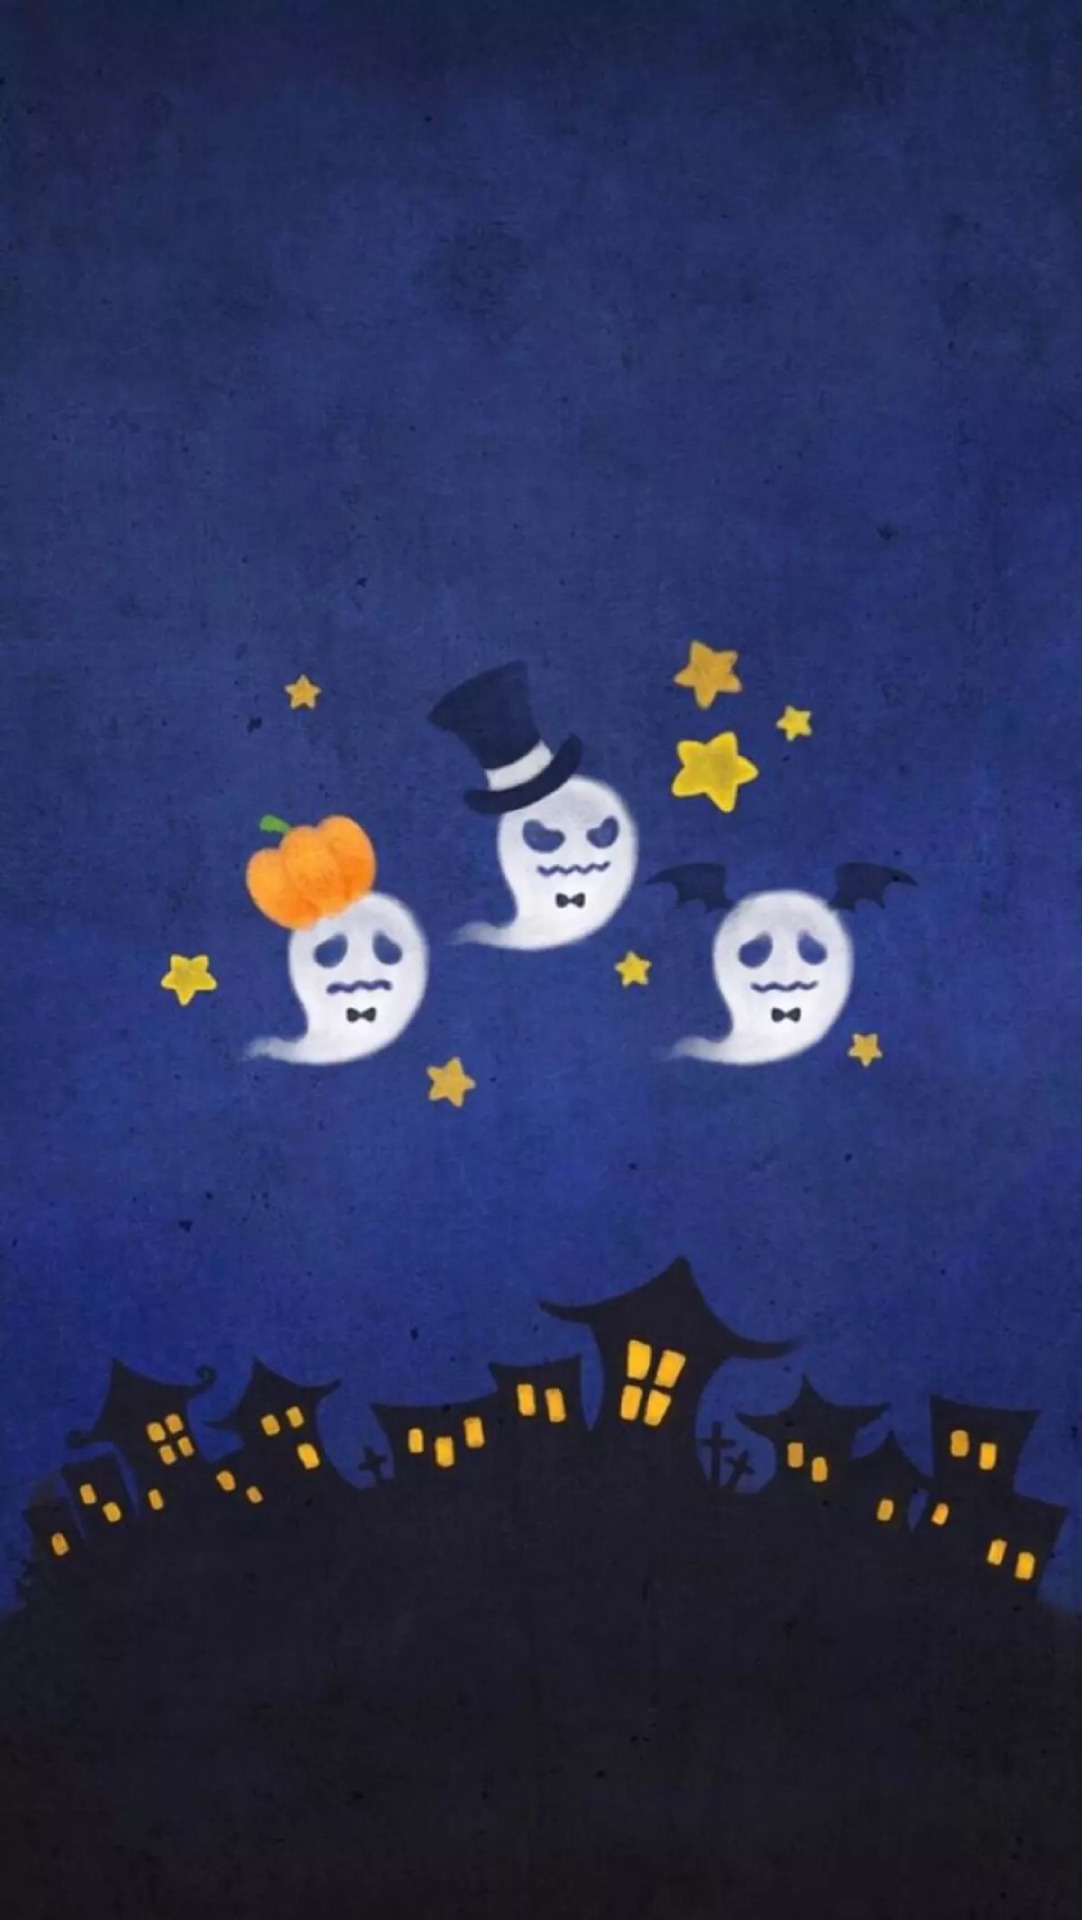 Halloween Wallpaper Iphone Cute.101 Halloween Iphone Wallpapers That Are Both Spooky Awesome